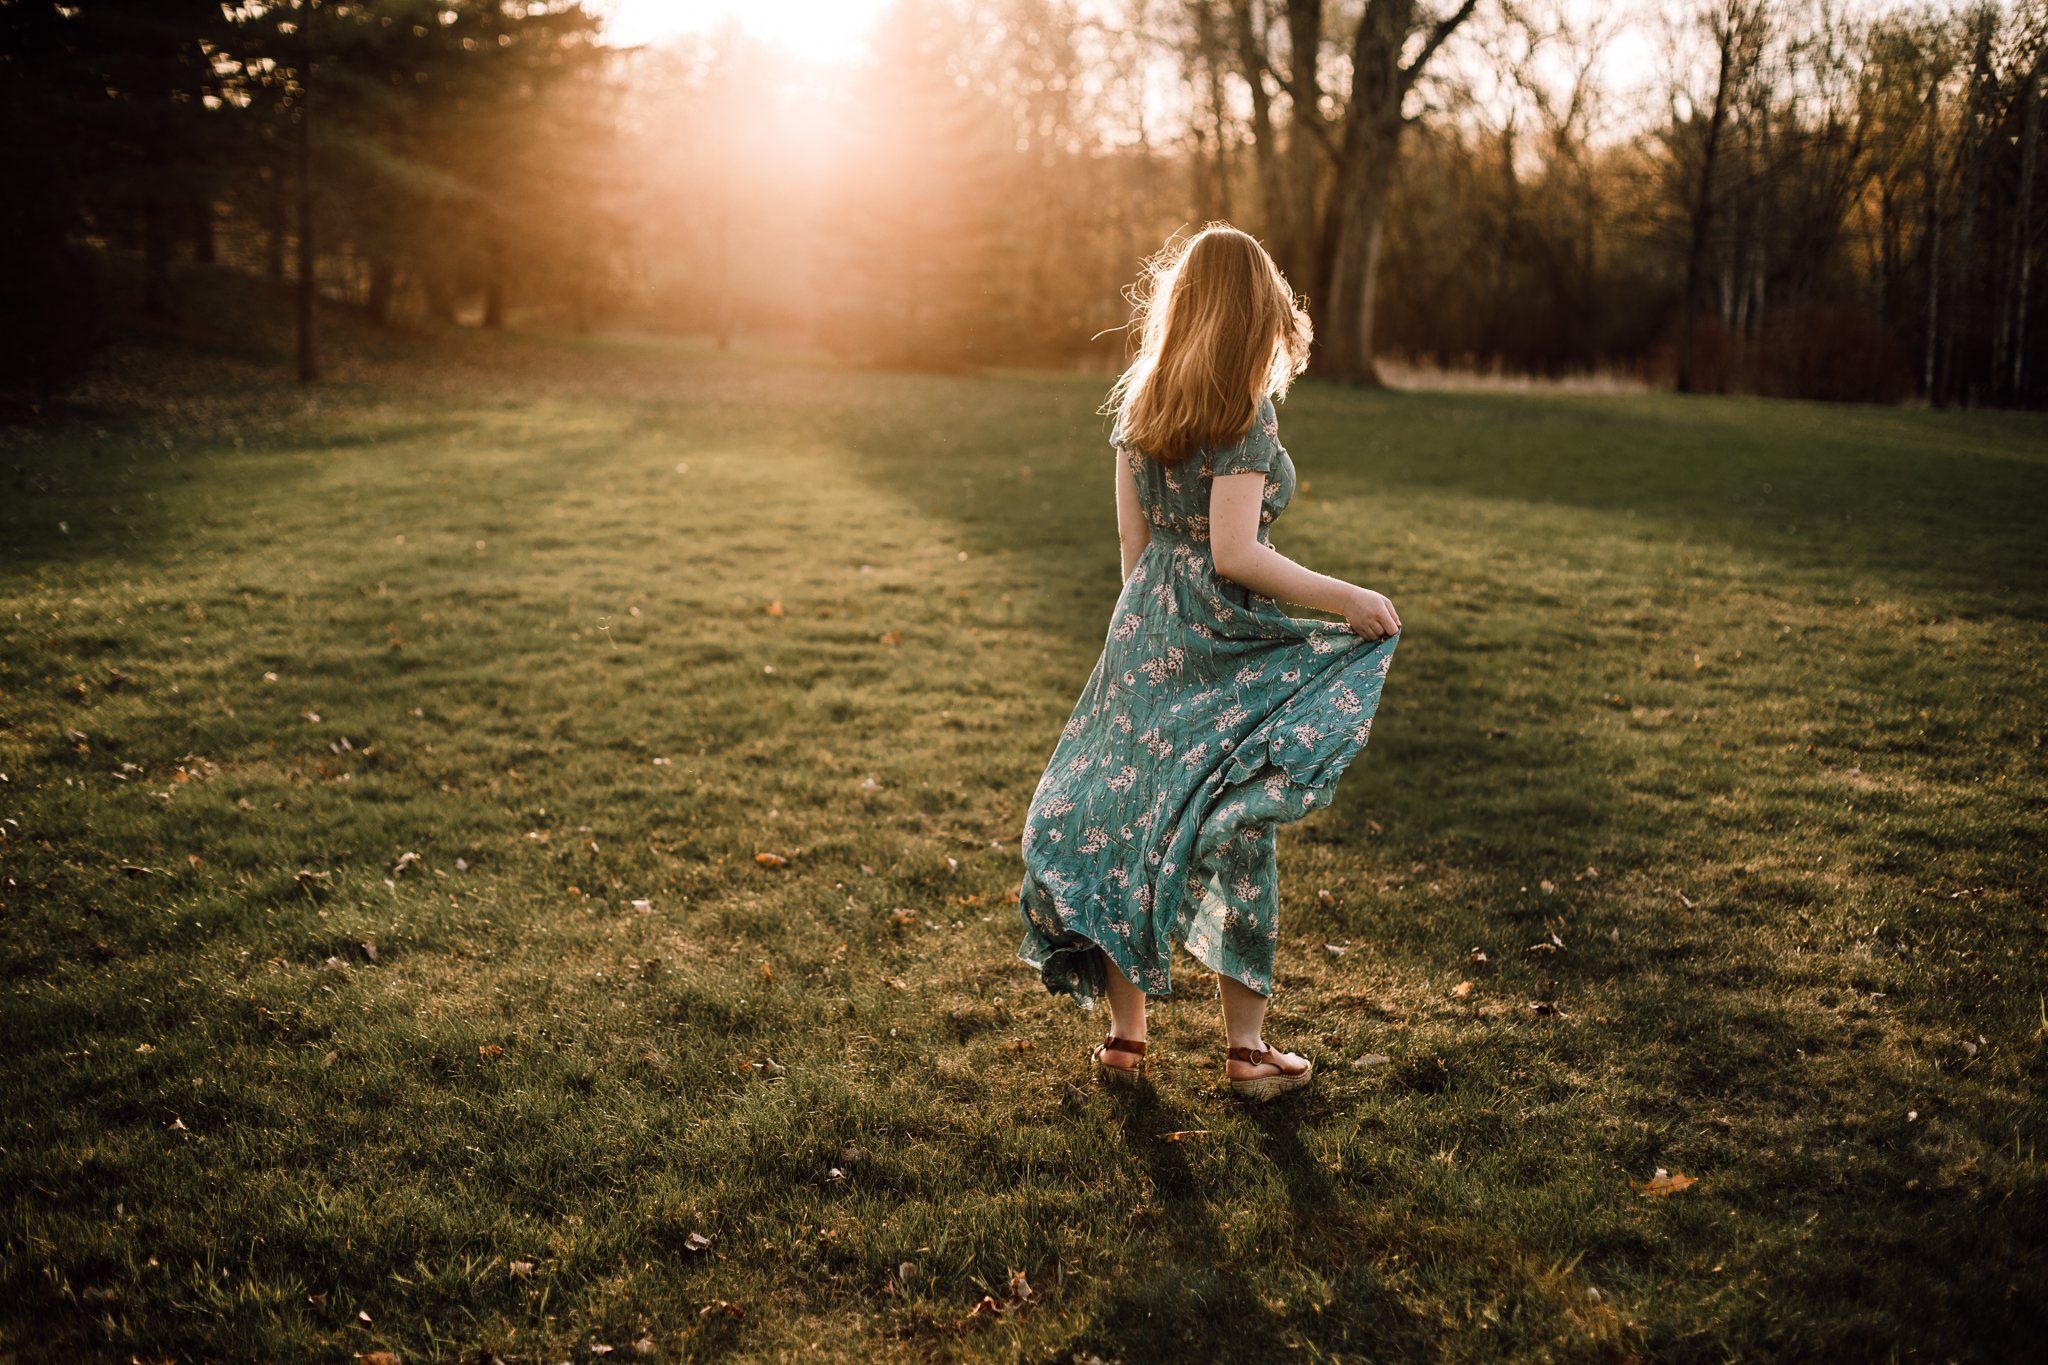 Woman in a field at sunset in a flowing dress - AMG Photography